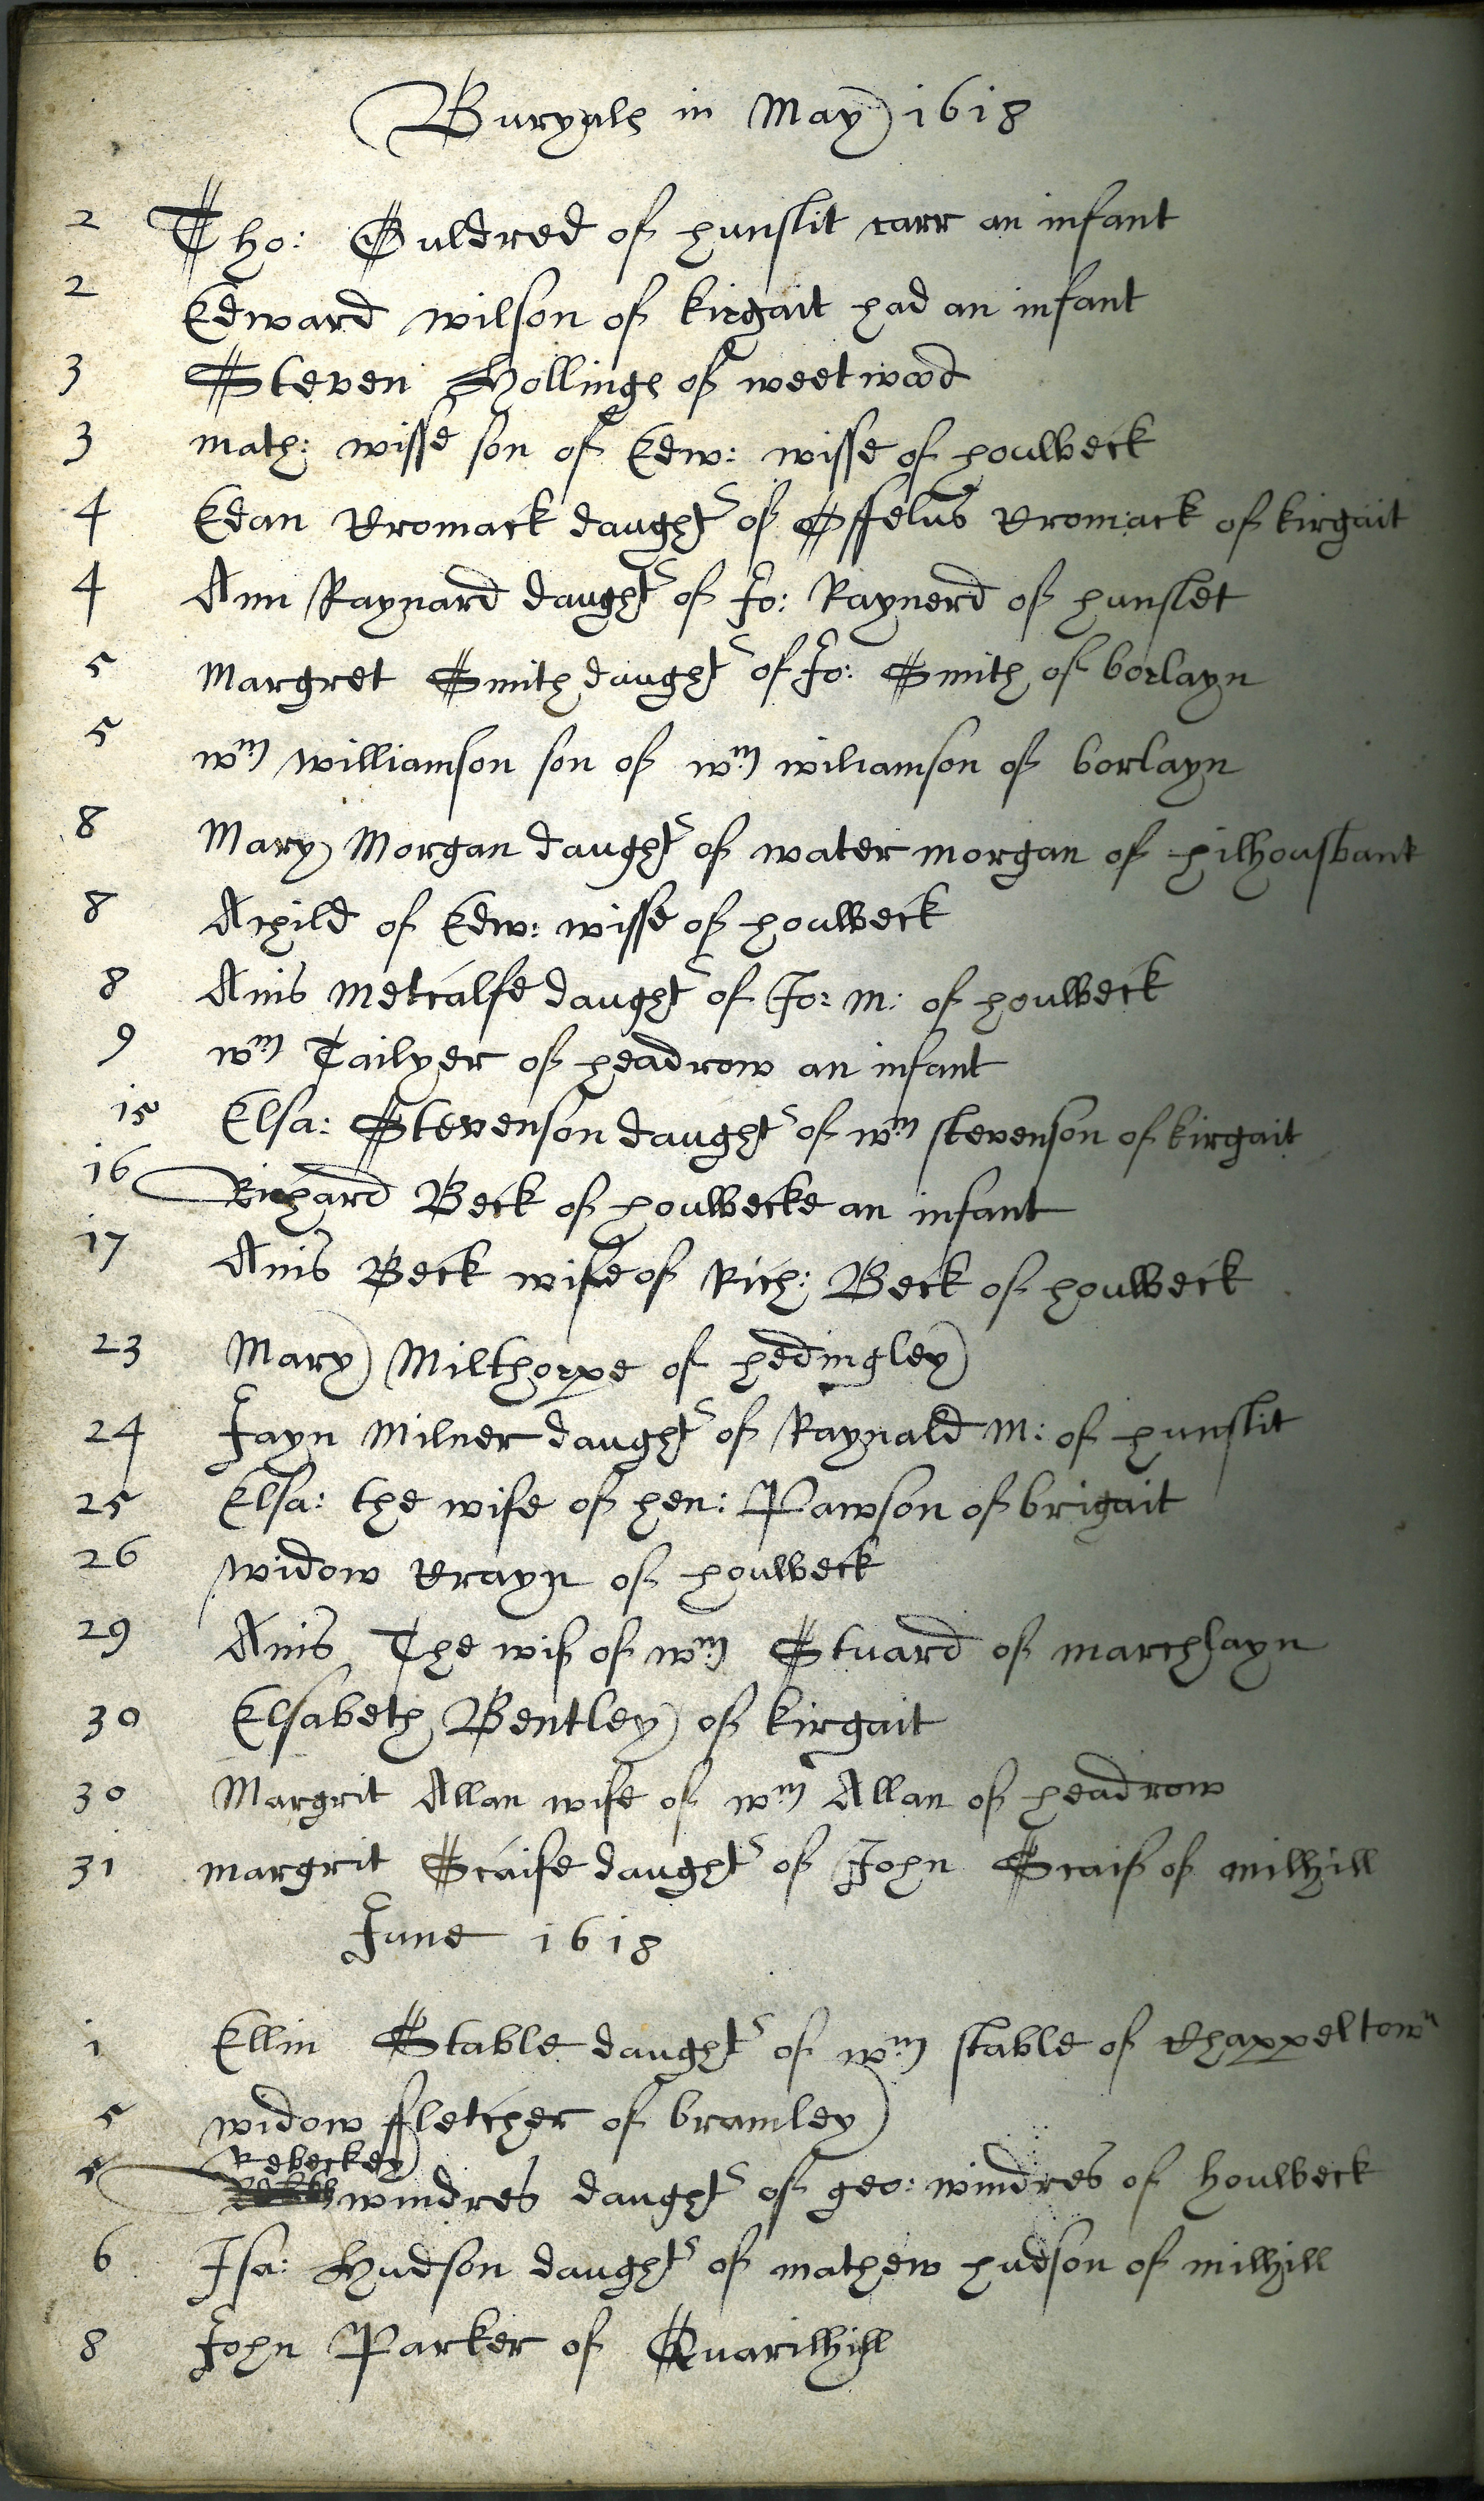 Page from Parish Register showing burials at St Peter's Church, Leeds during 1618